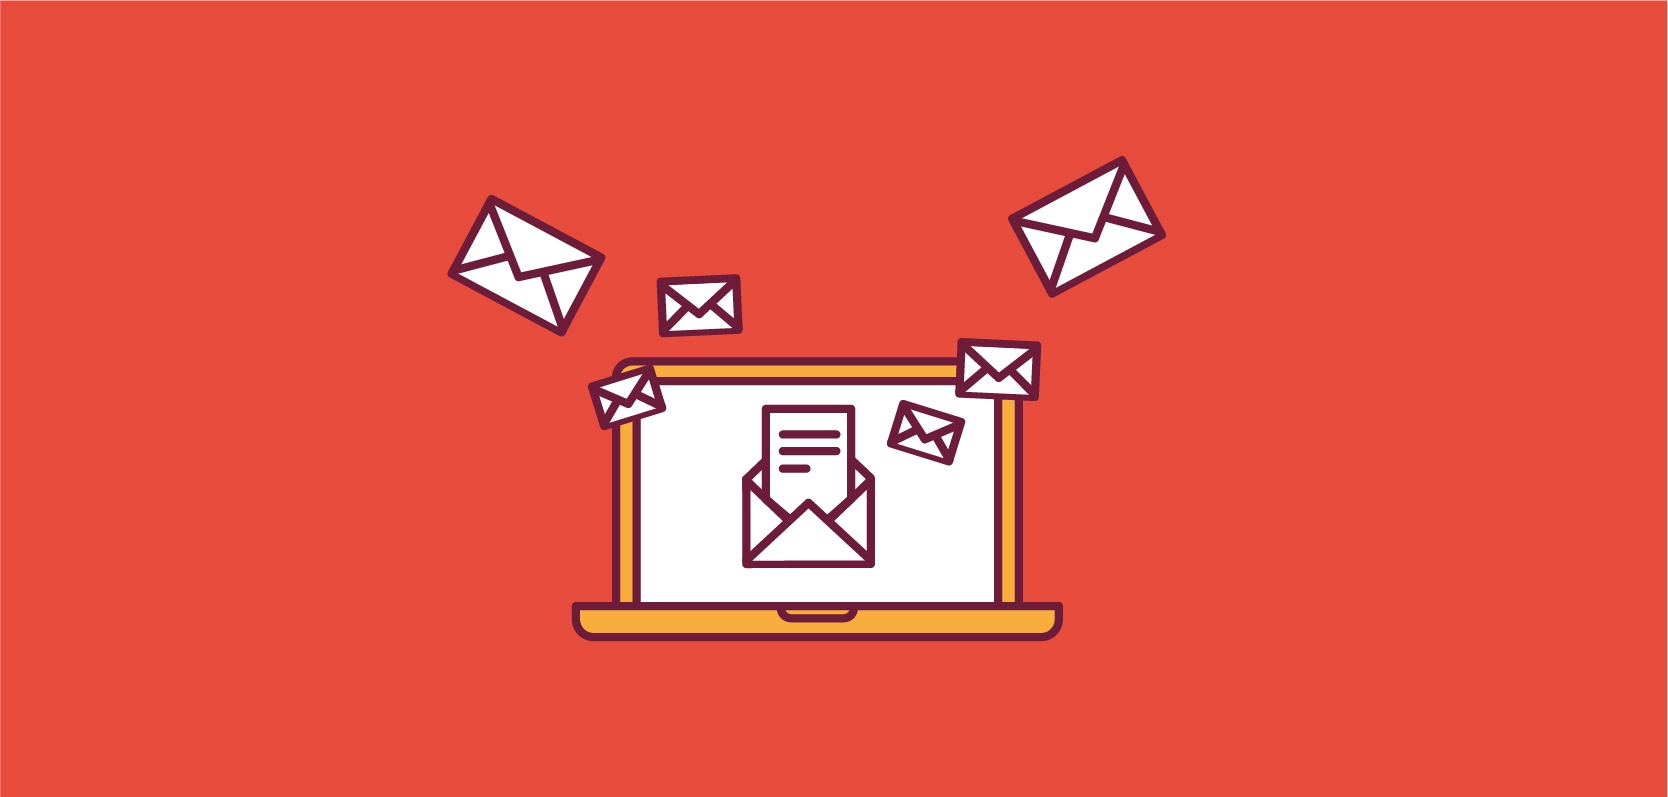 Haz que el Email Marketing sea un éxito